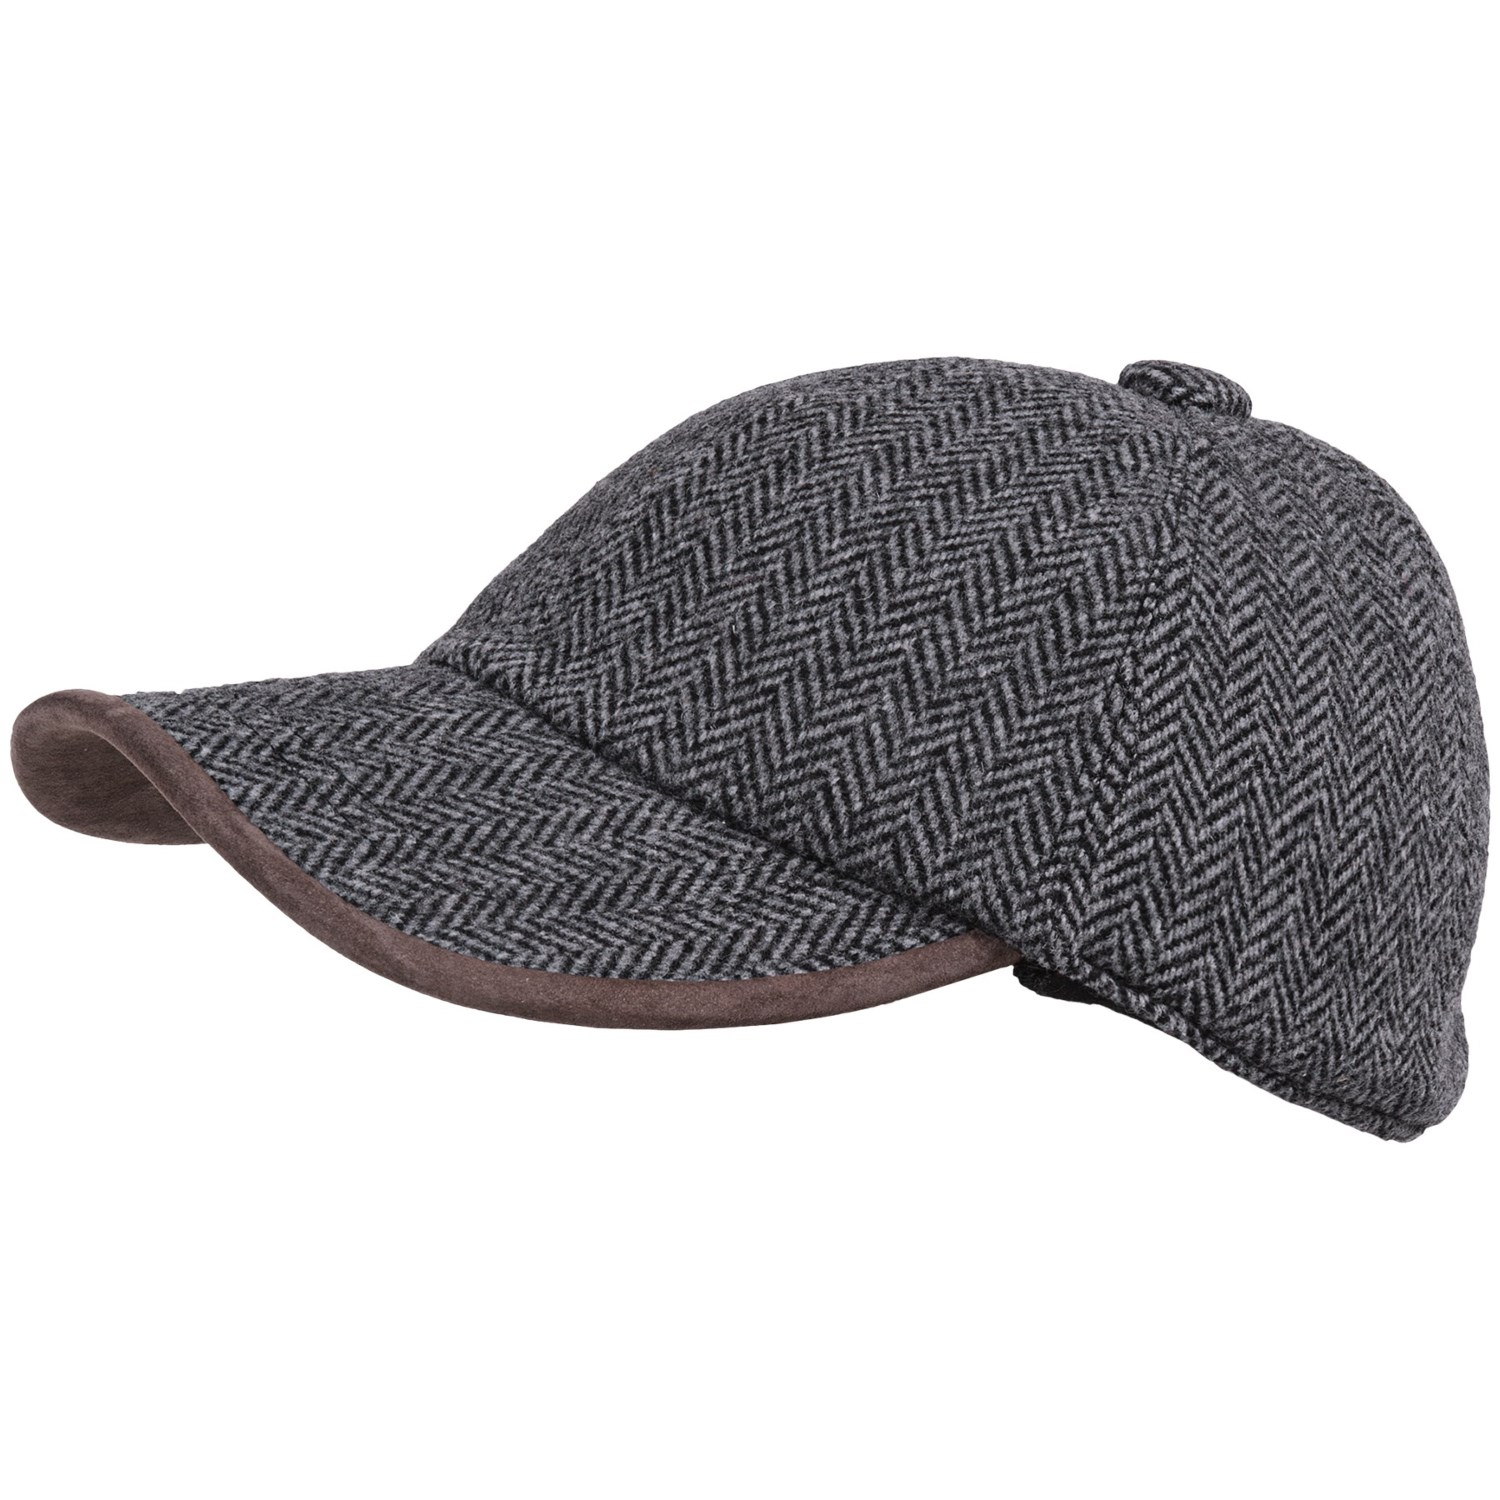 Irish Tweed Hats and Caps:: MENS:: Footwear This online store is powered by X-Cart shopping-cart-software This X-Cart Gold installation is licensed for evaluation purposes only and this message must be kept visible at the top of every store page.